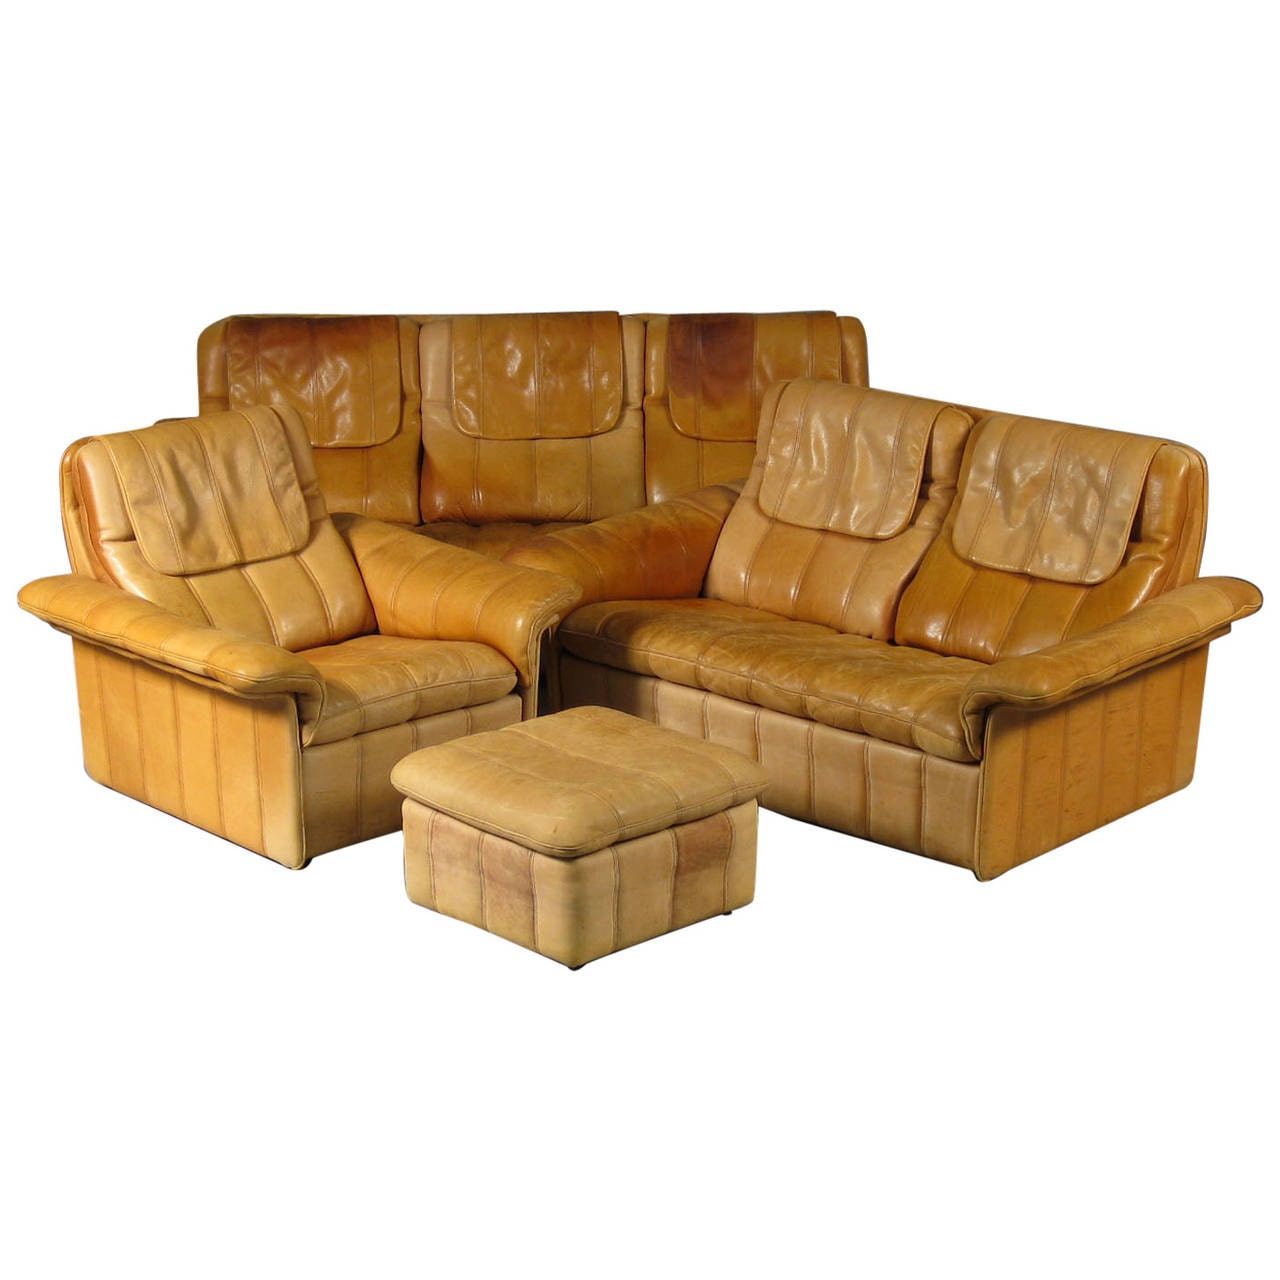 Set Of Fine Leather Upholstered Living Room Furniture By De